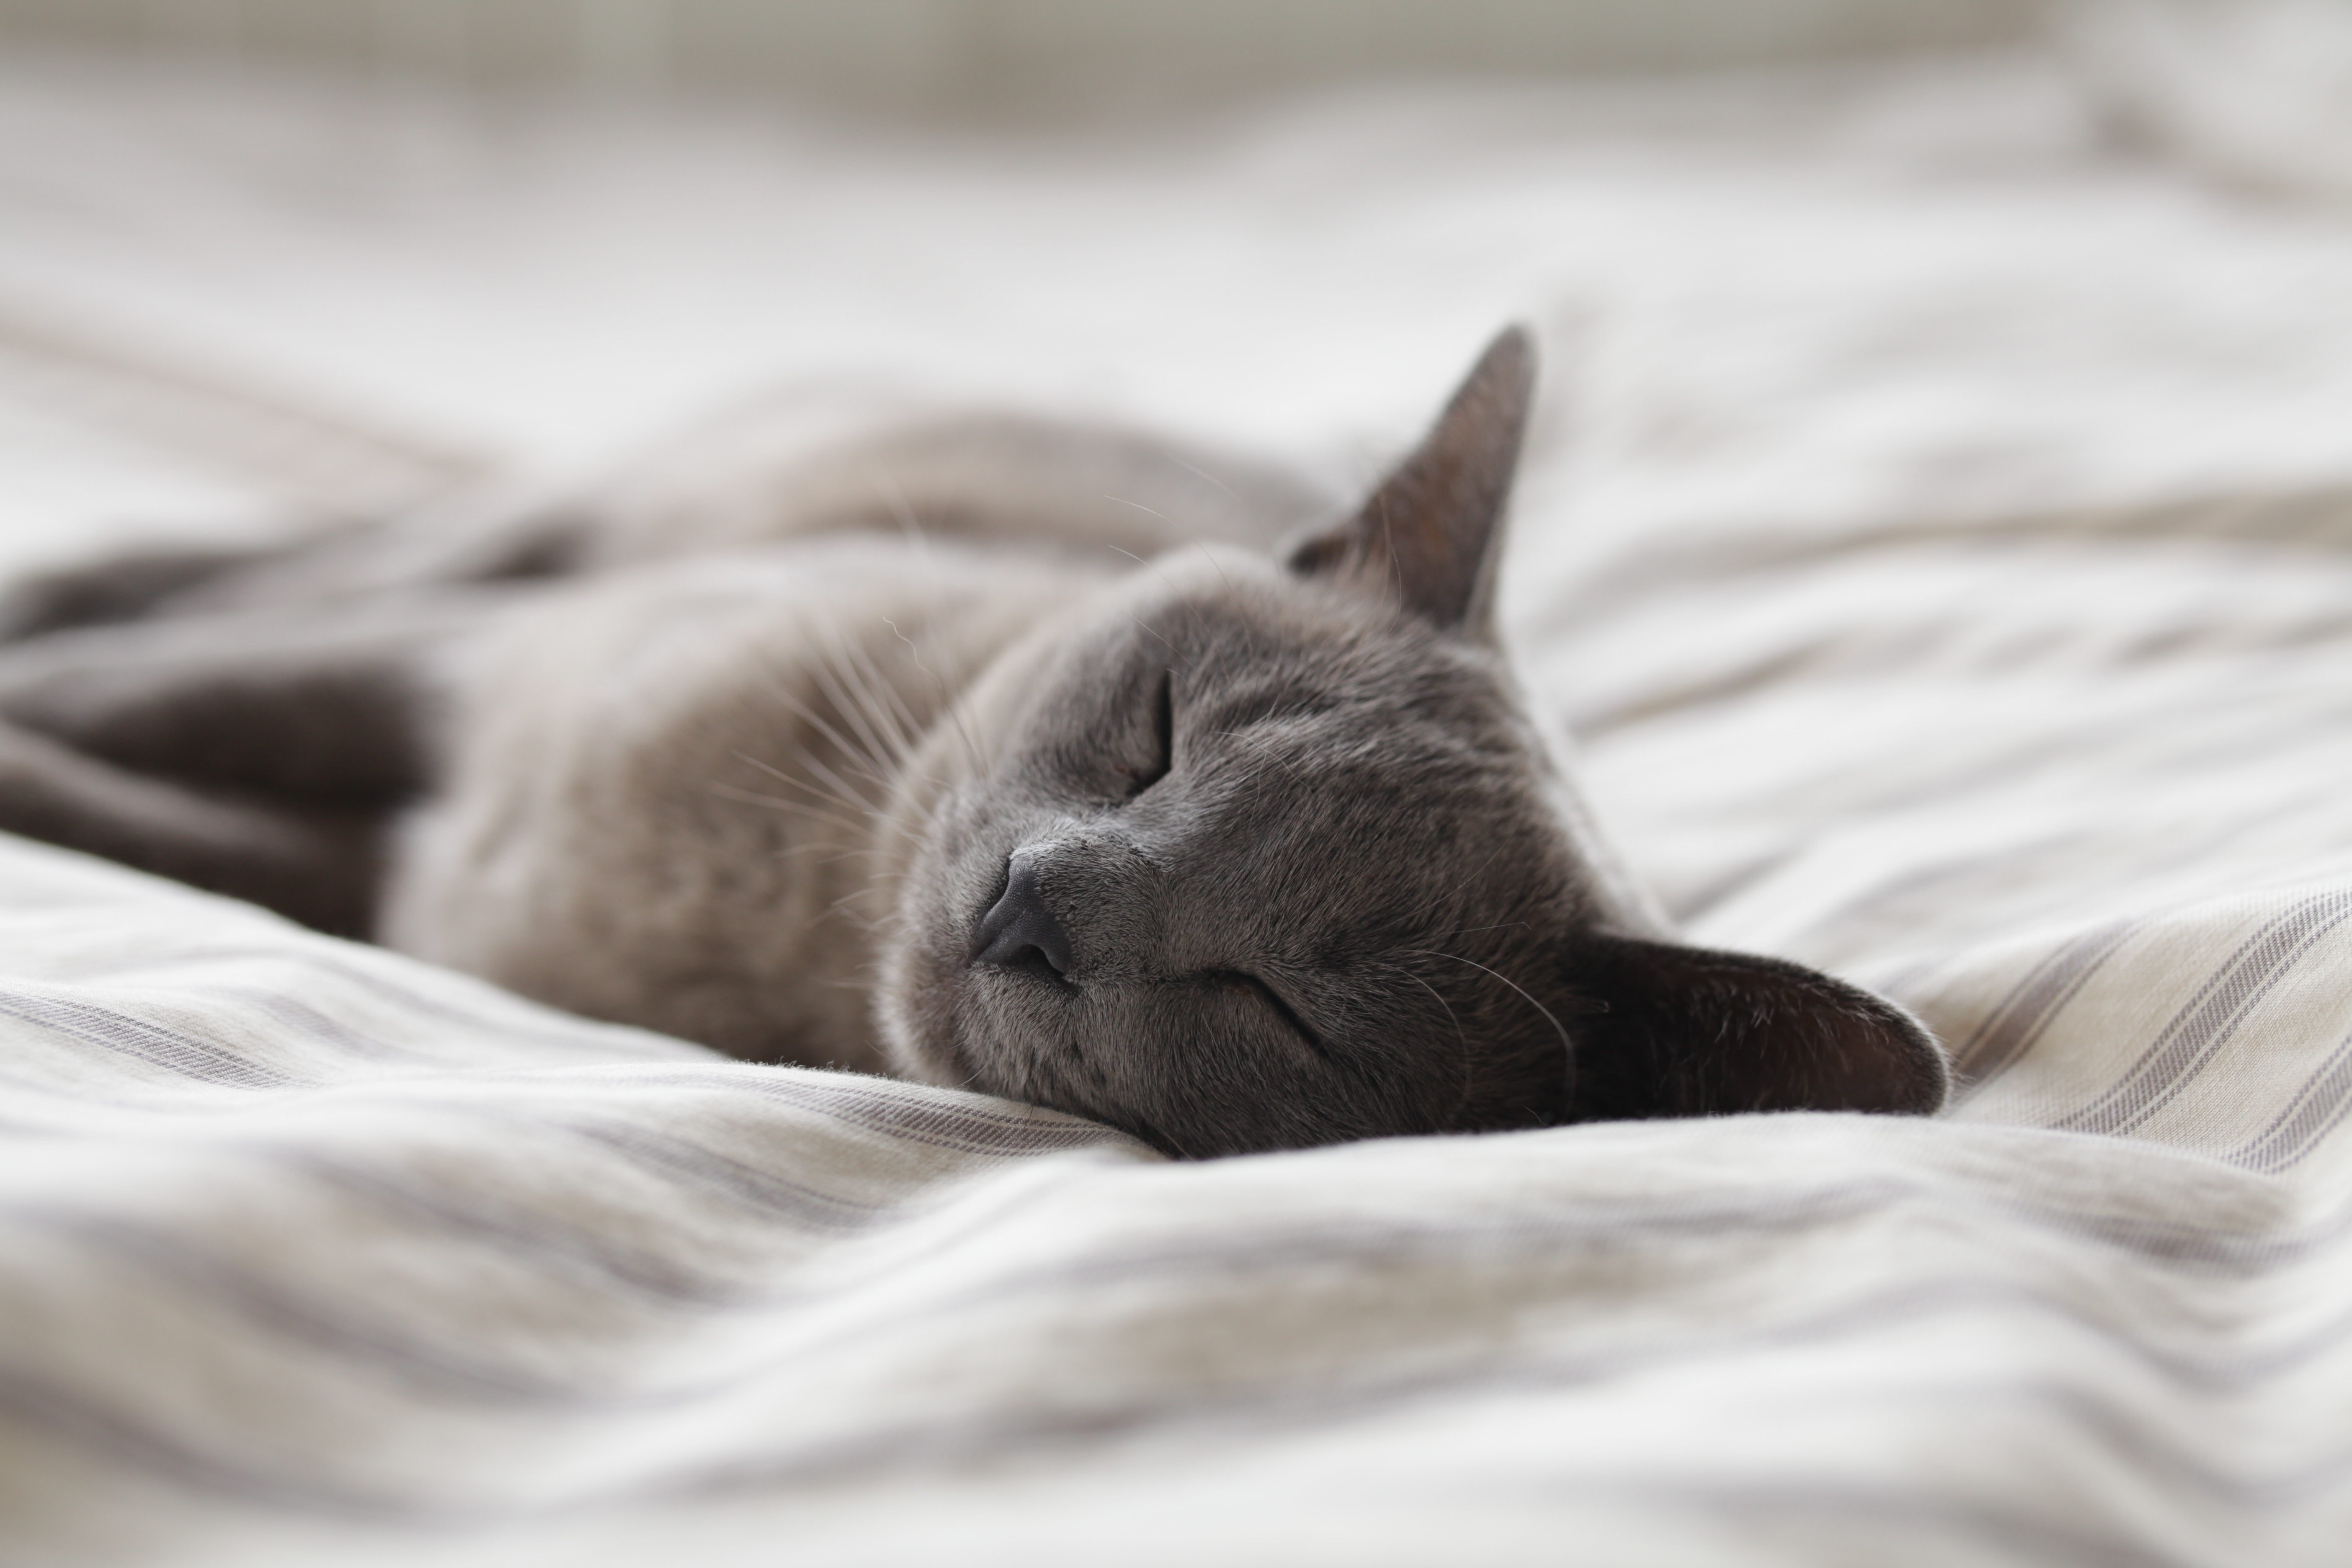 A short-haired cat sleeping on a bed